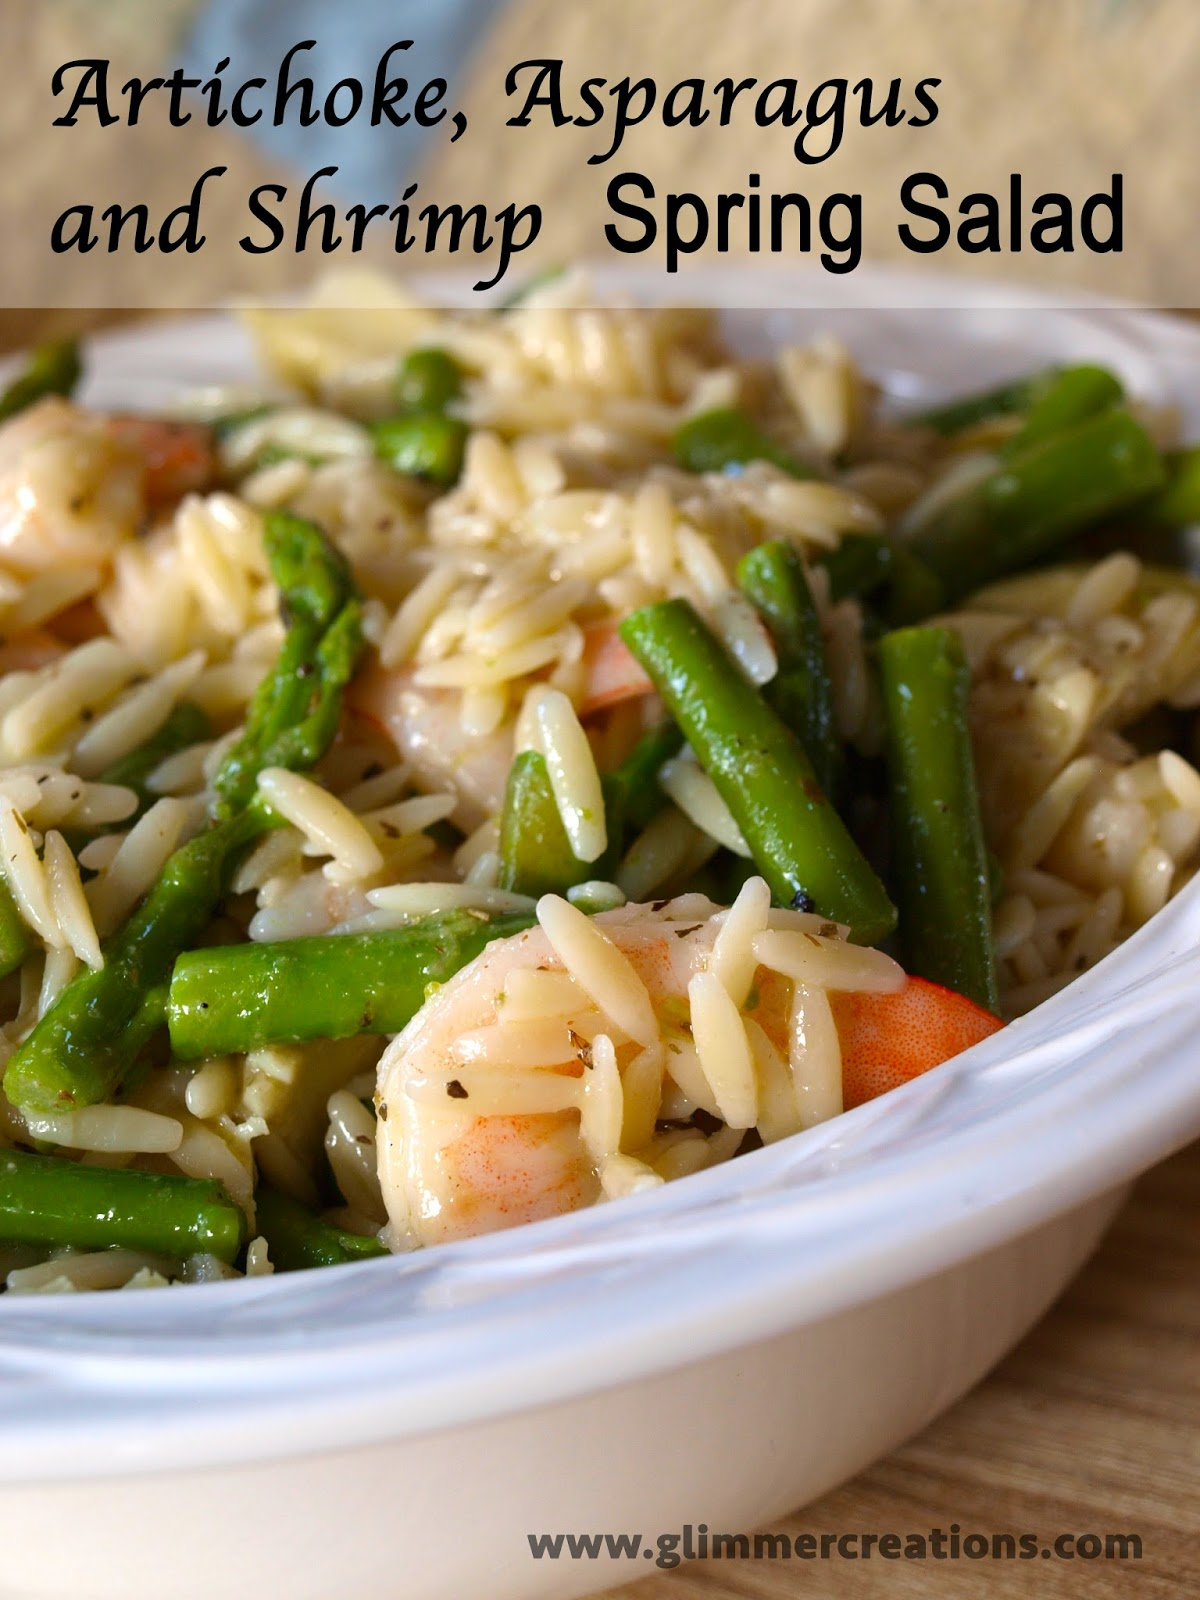 Glimmer Creations: Artichoke, Asparagus and Shrimp Salad ...